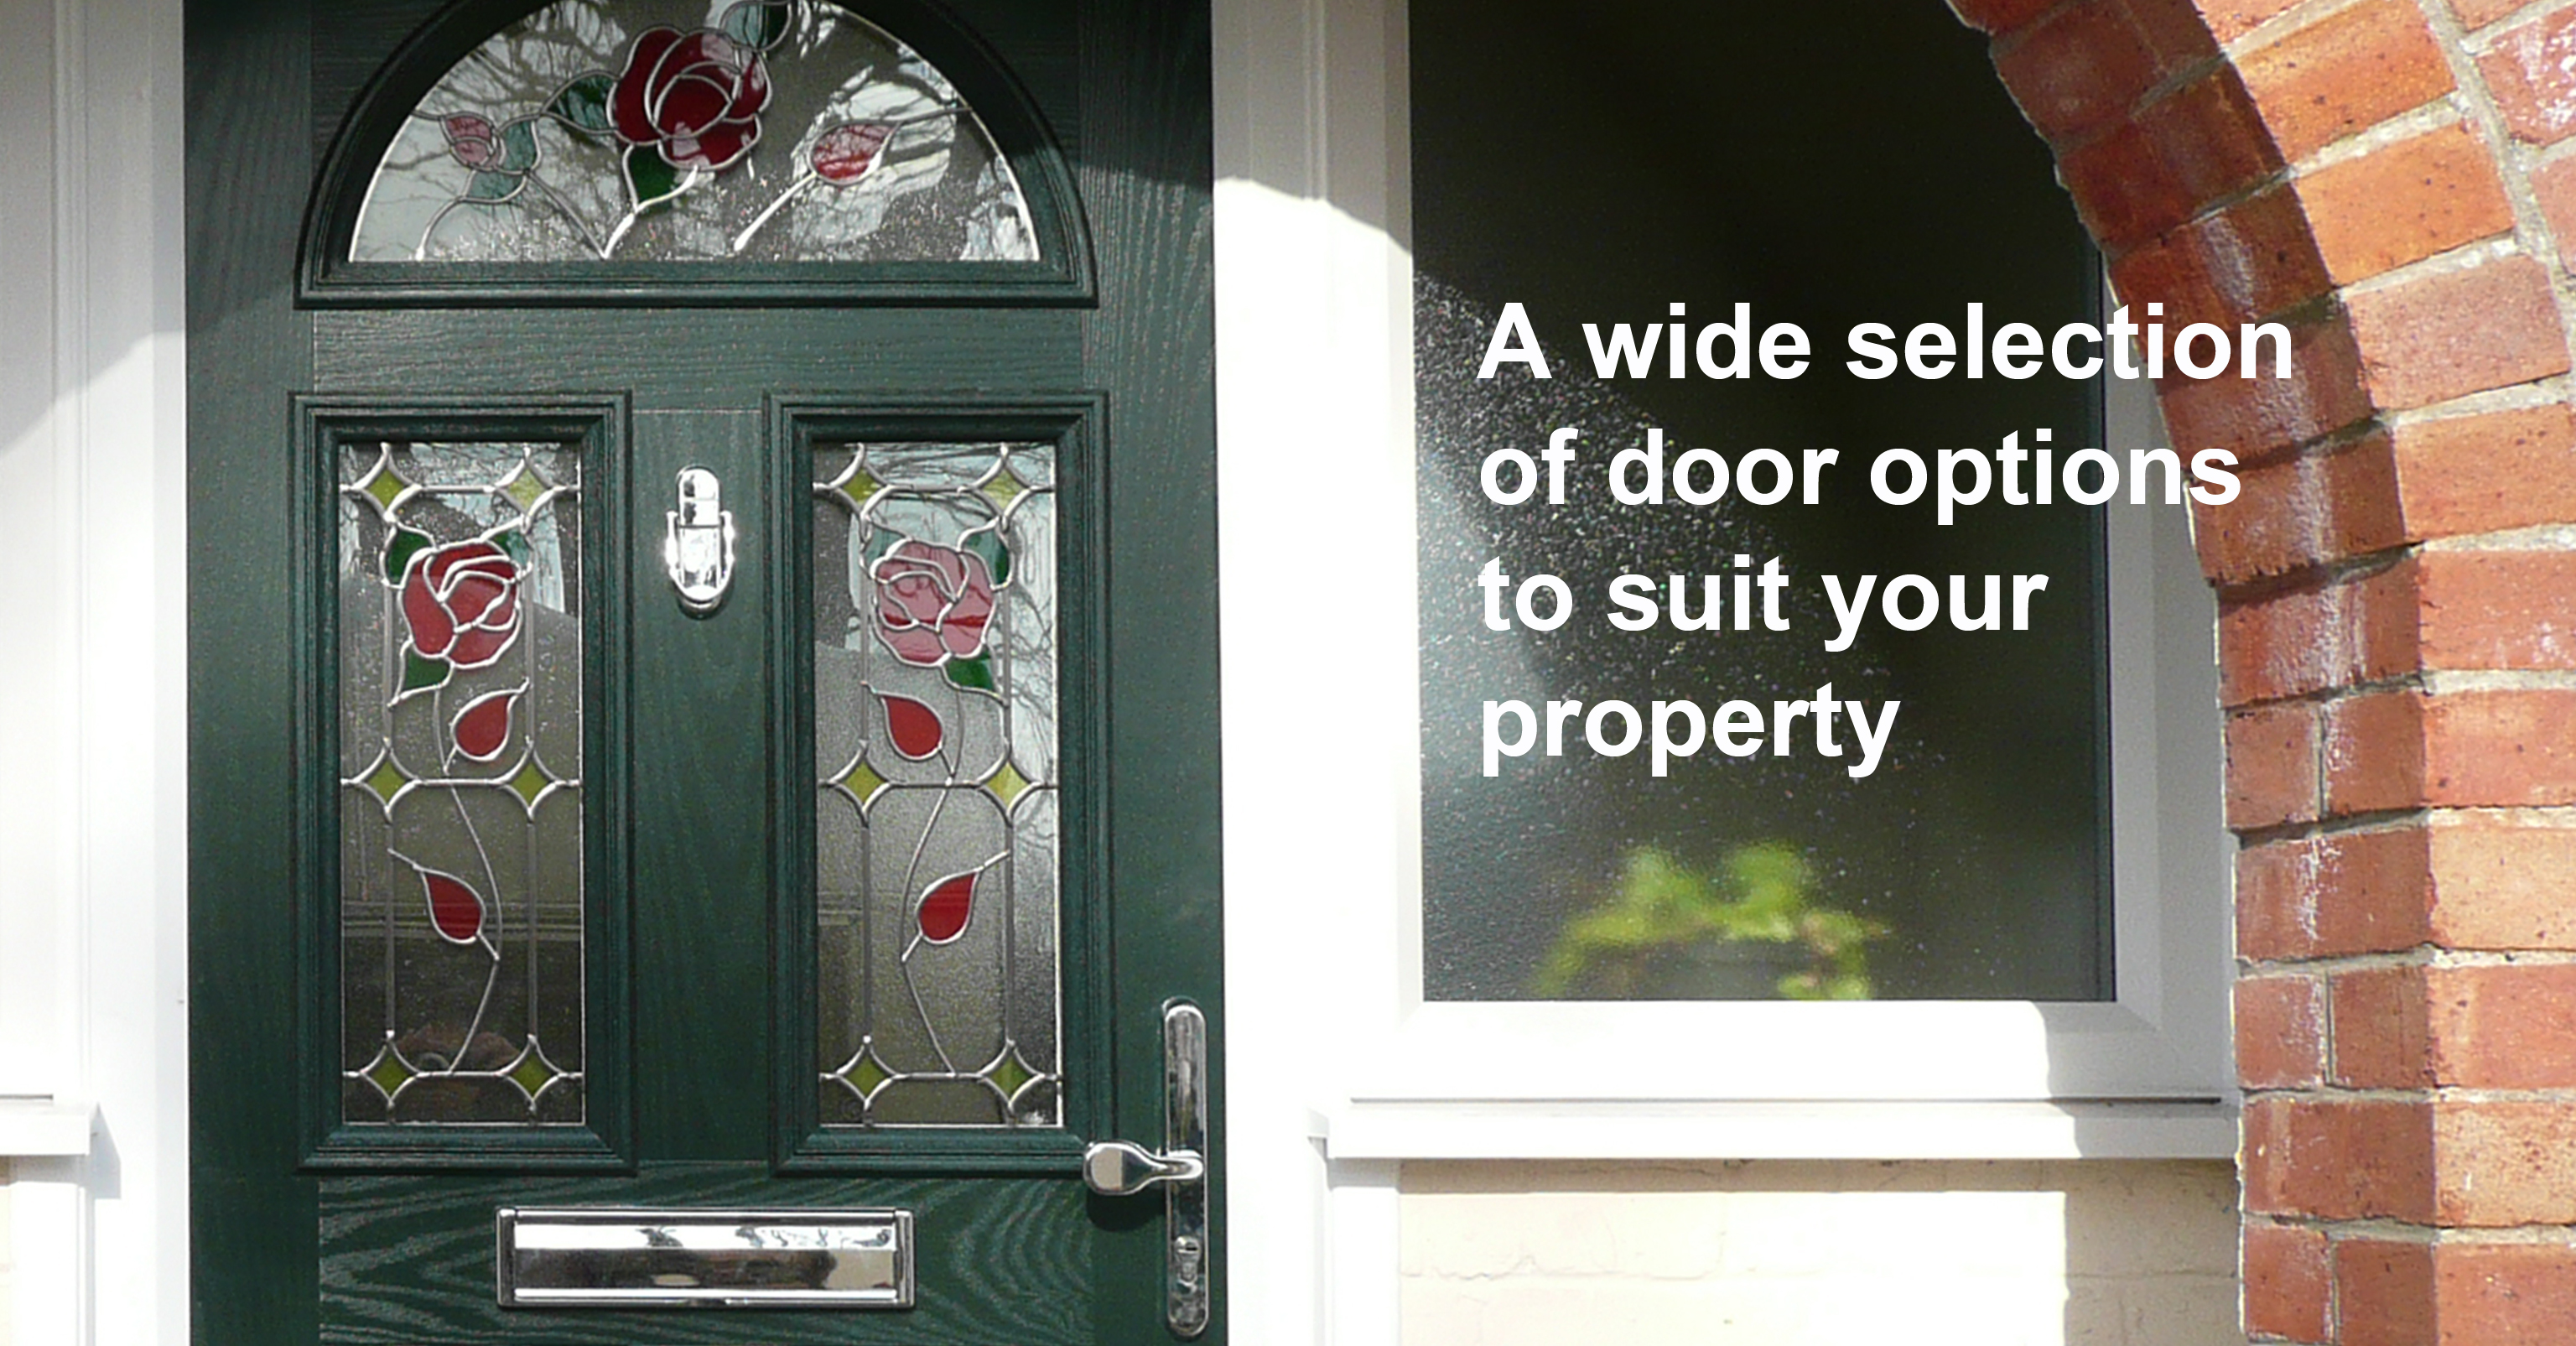 replacement doors, UPVc doors, composite doors, contemporary traditional